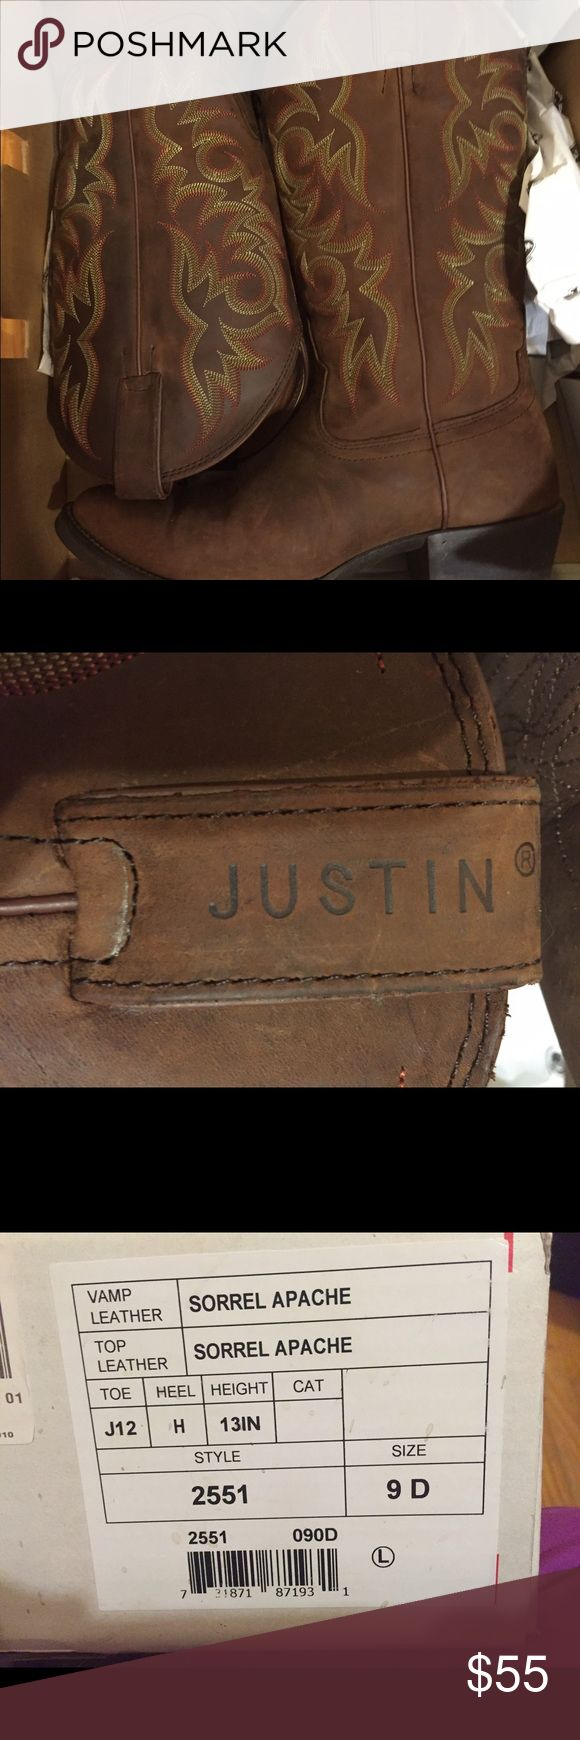 Justin Boots size 9 Mens Worn once ..still in the box. Justin boots for men size 9. New price is $160...great deal on these boots. These are round toe  boots Justin Boots Shoes Cowboy & Western Boots